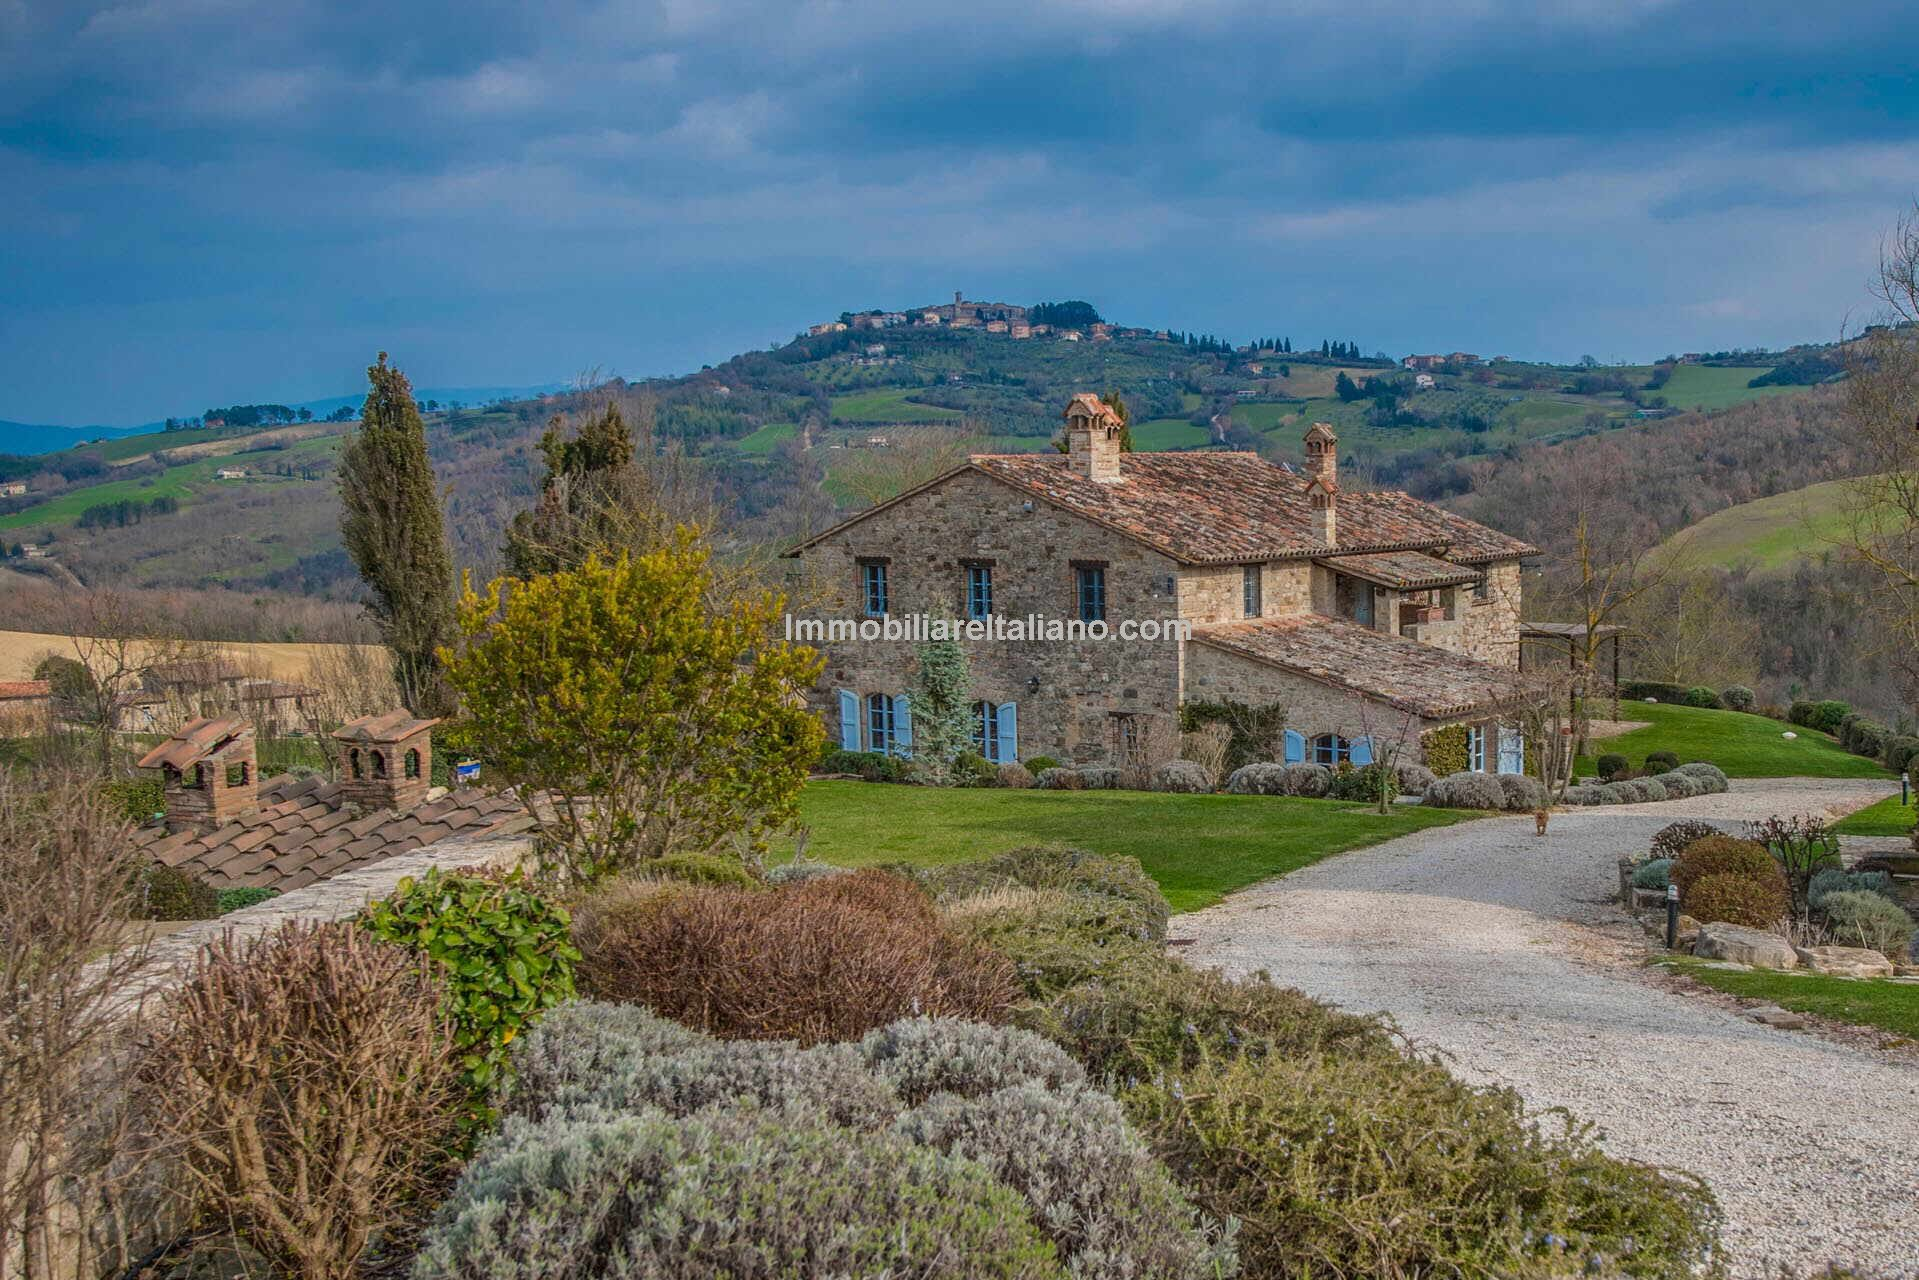 Umbria Italy property comprising a pair of farmhouses. Fully restored farmhouses with garden, swimming pool and wellness centre